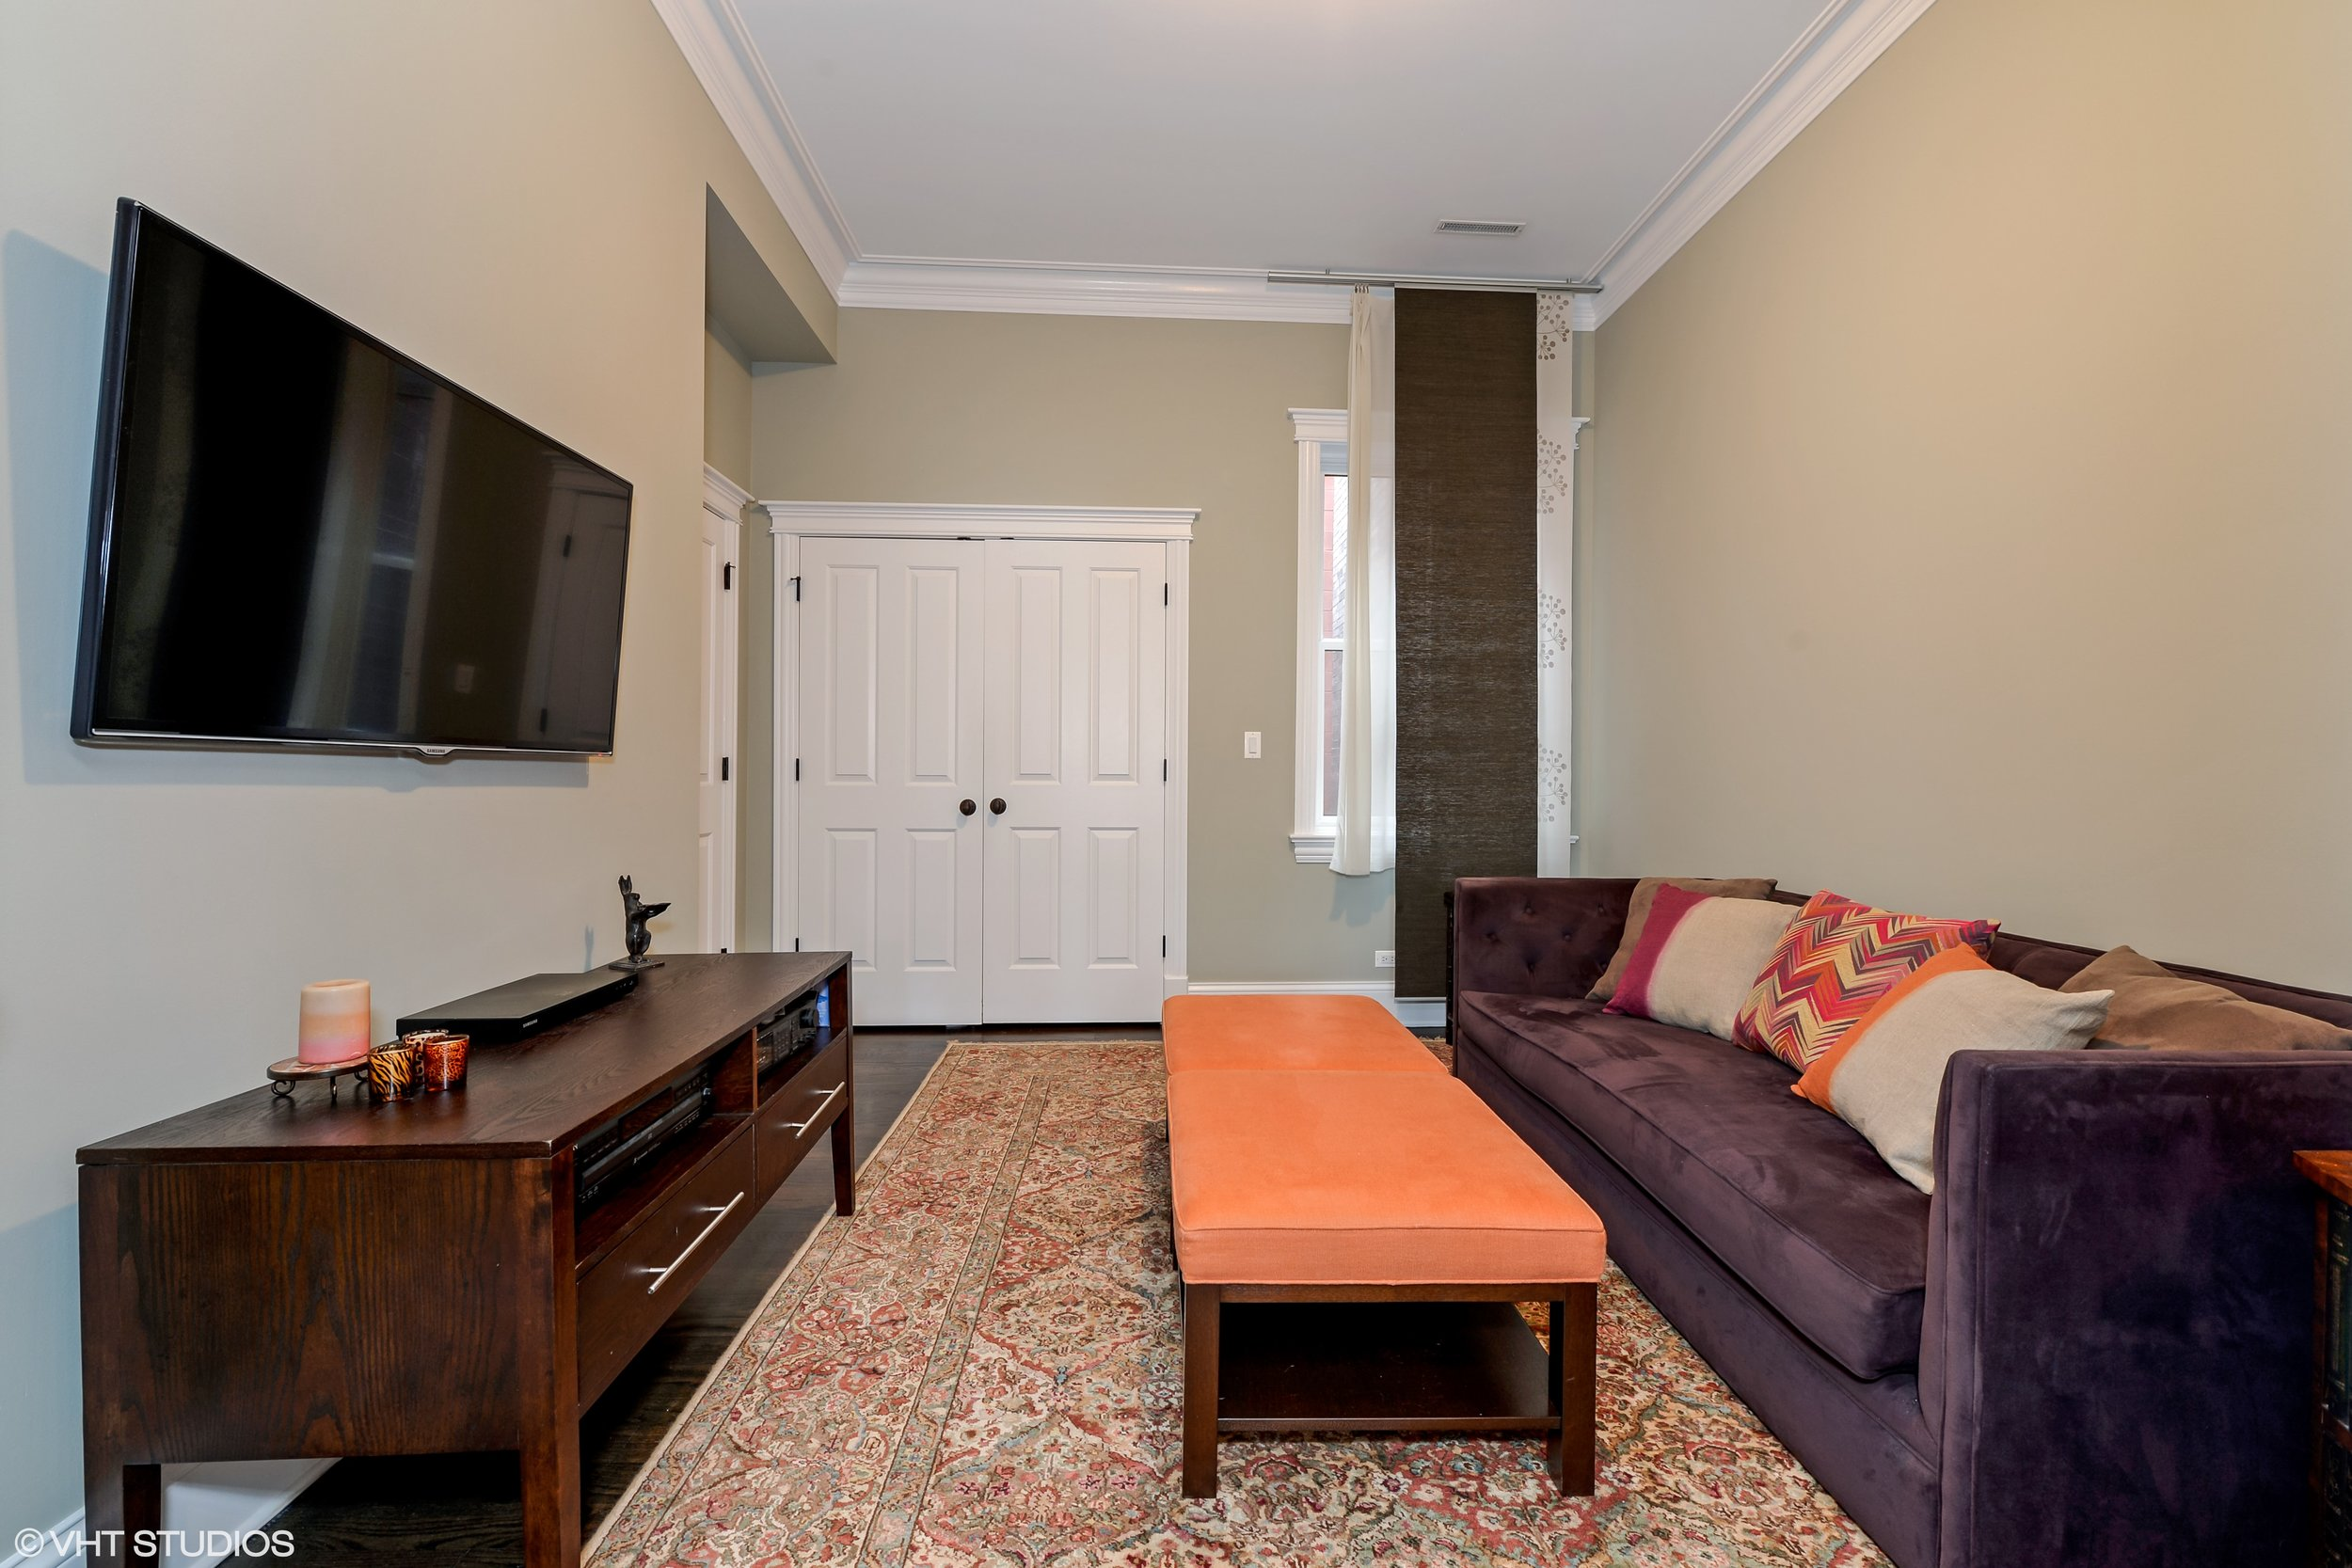 12_3330NorthAshlandAve_2_154_3rdBedroom_HiRes.jpg